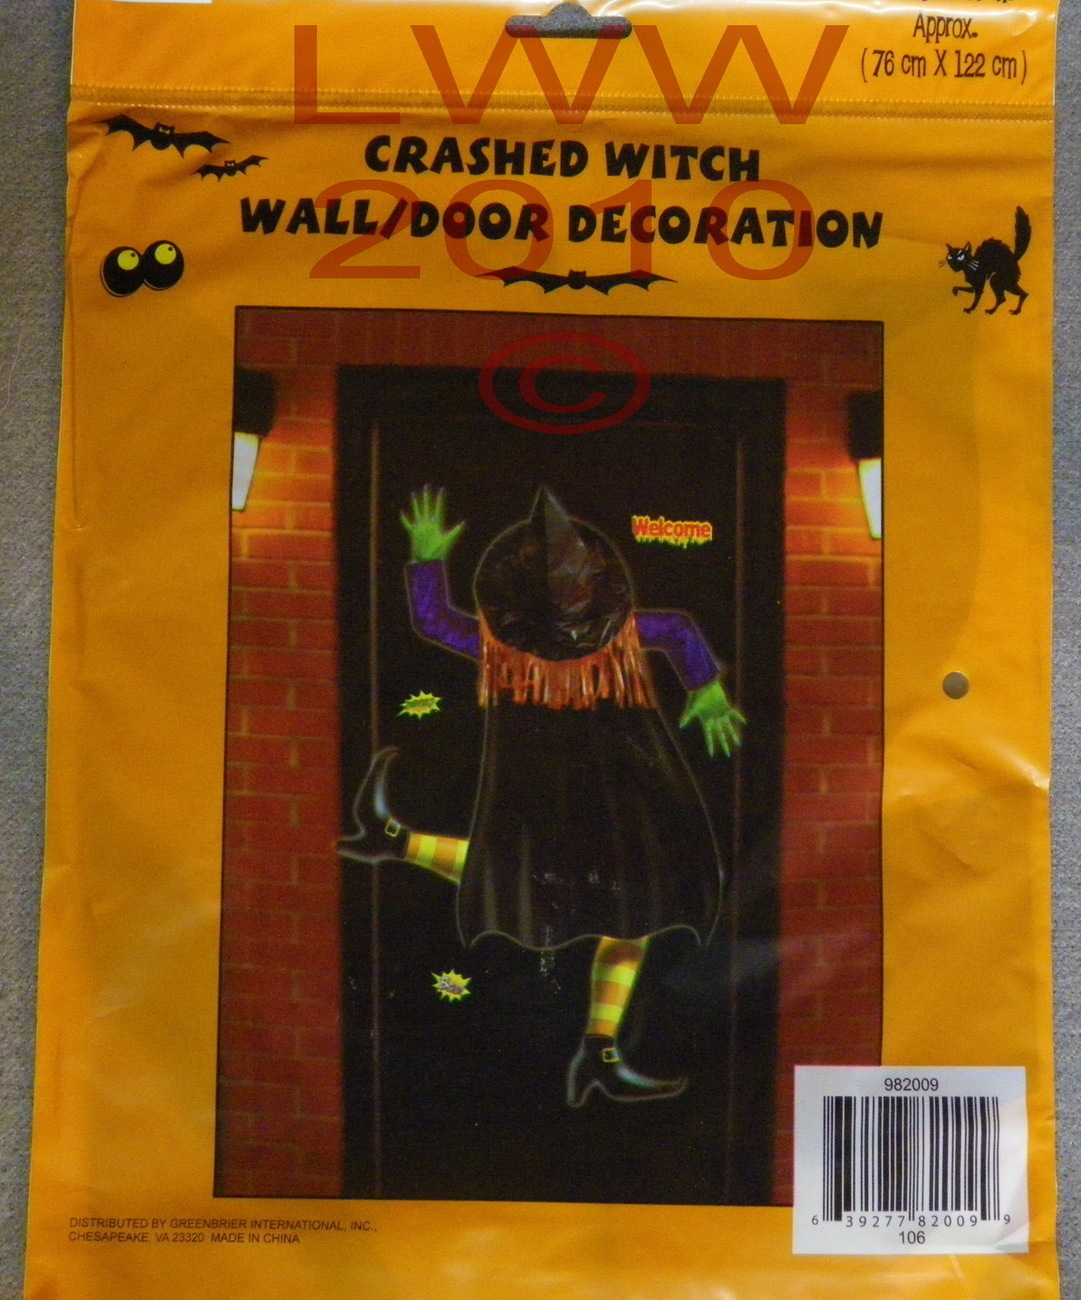 New Crashed Witch Wall or Door Halloween Decoartion